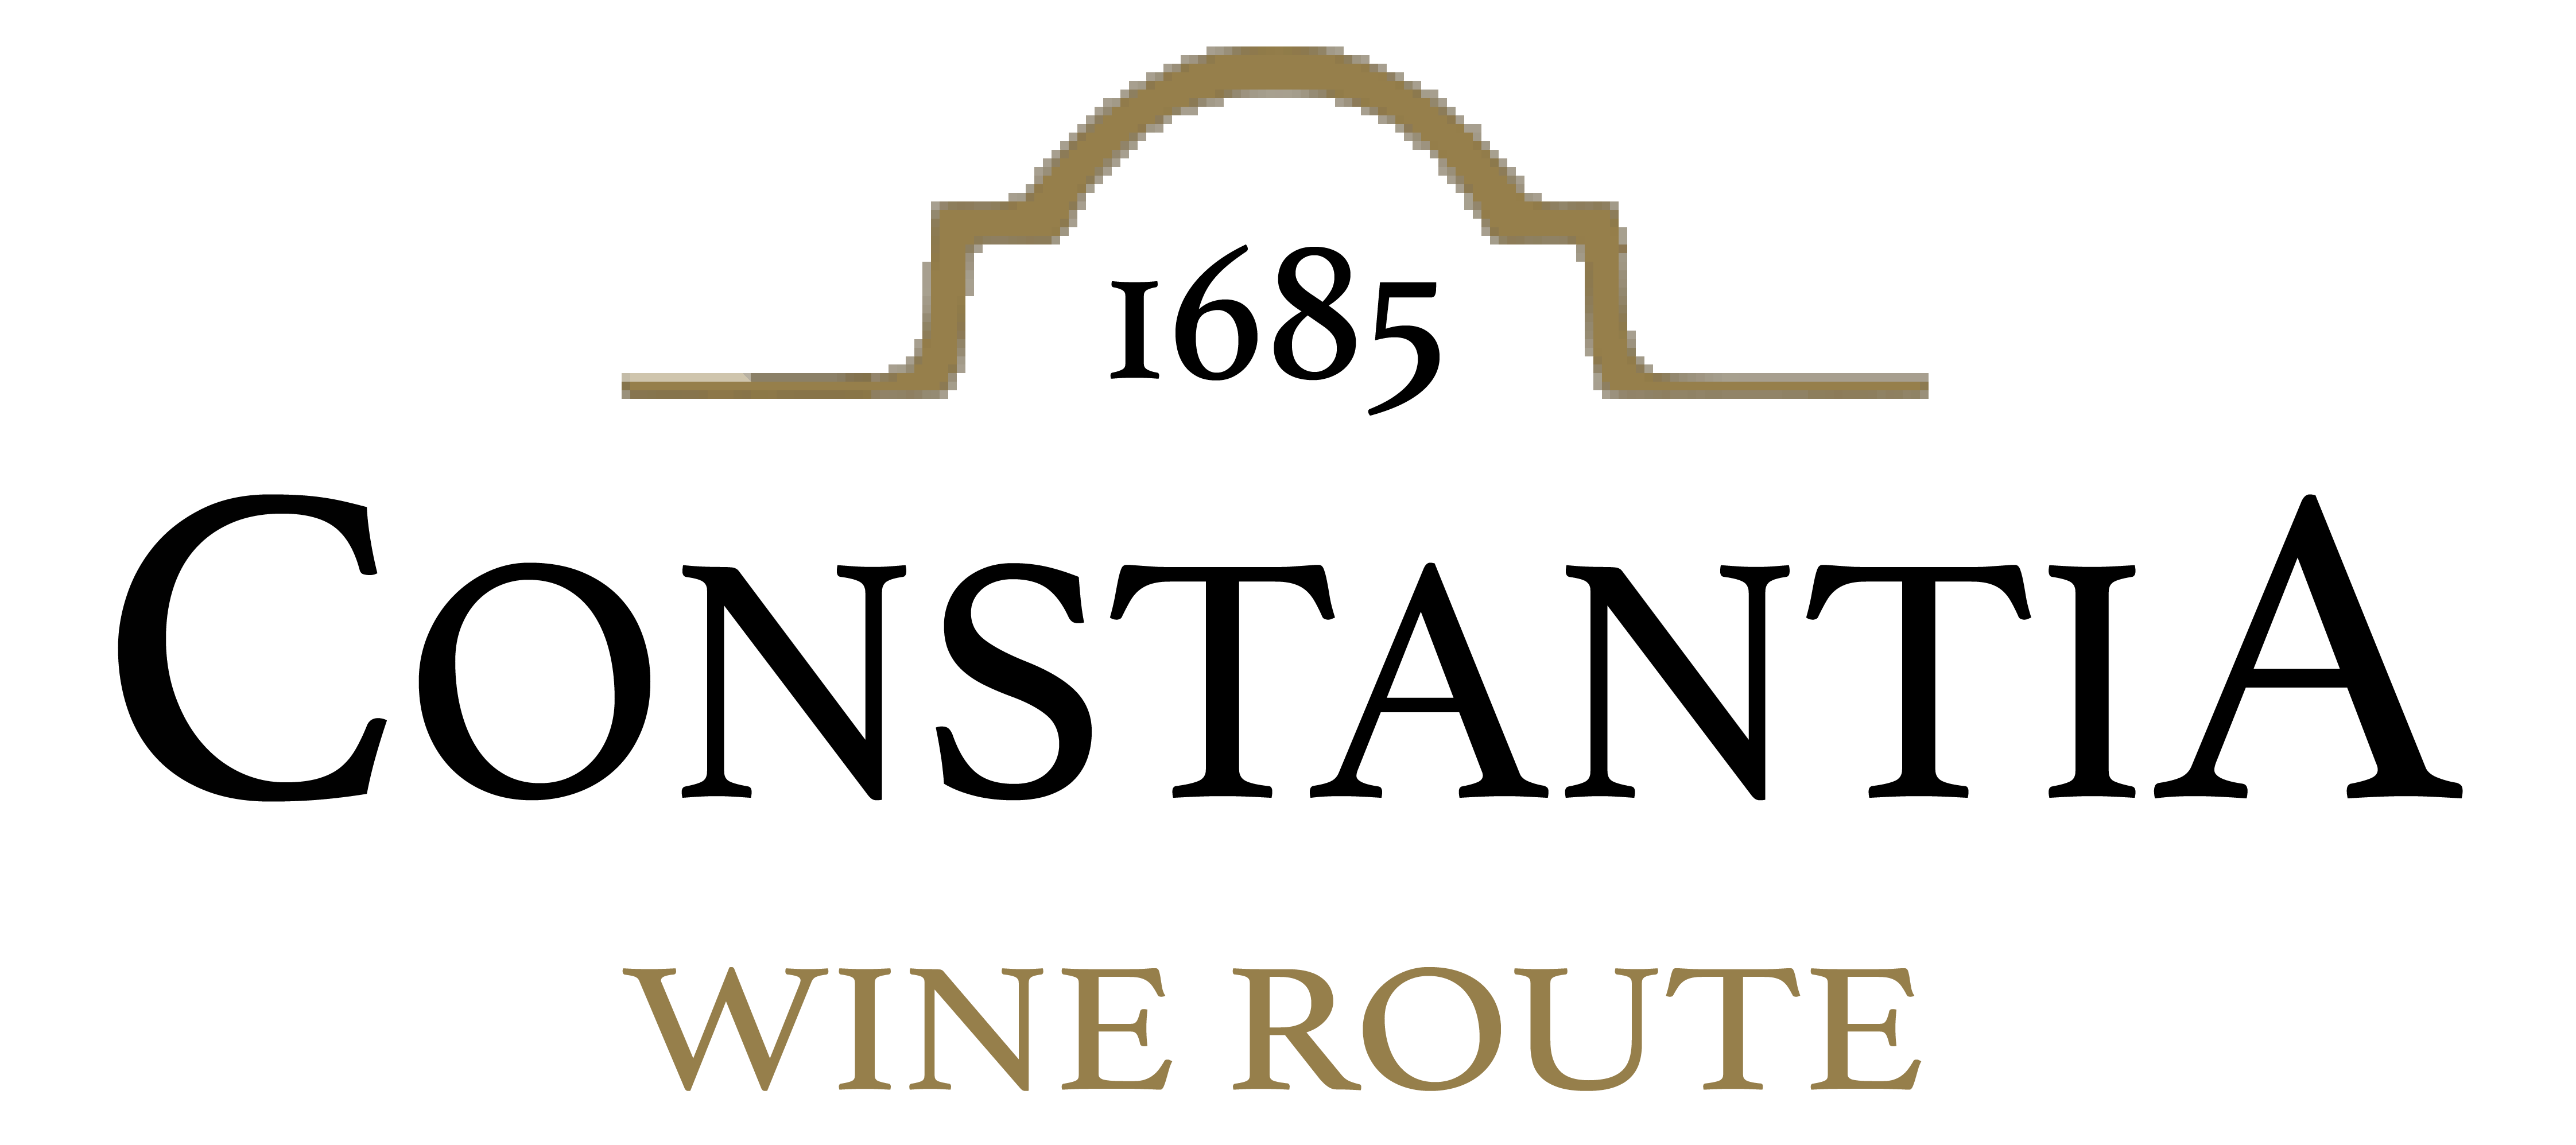 Constantia wine route black